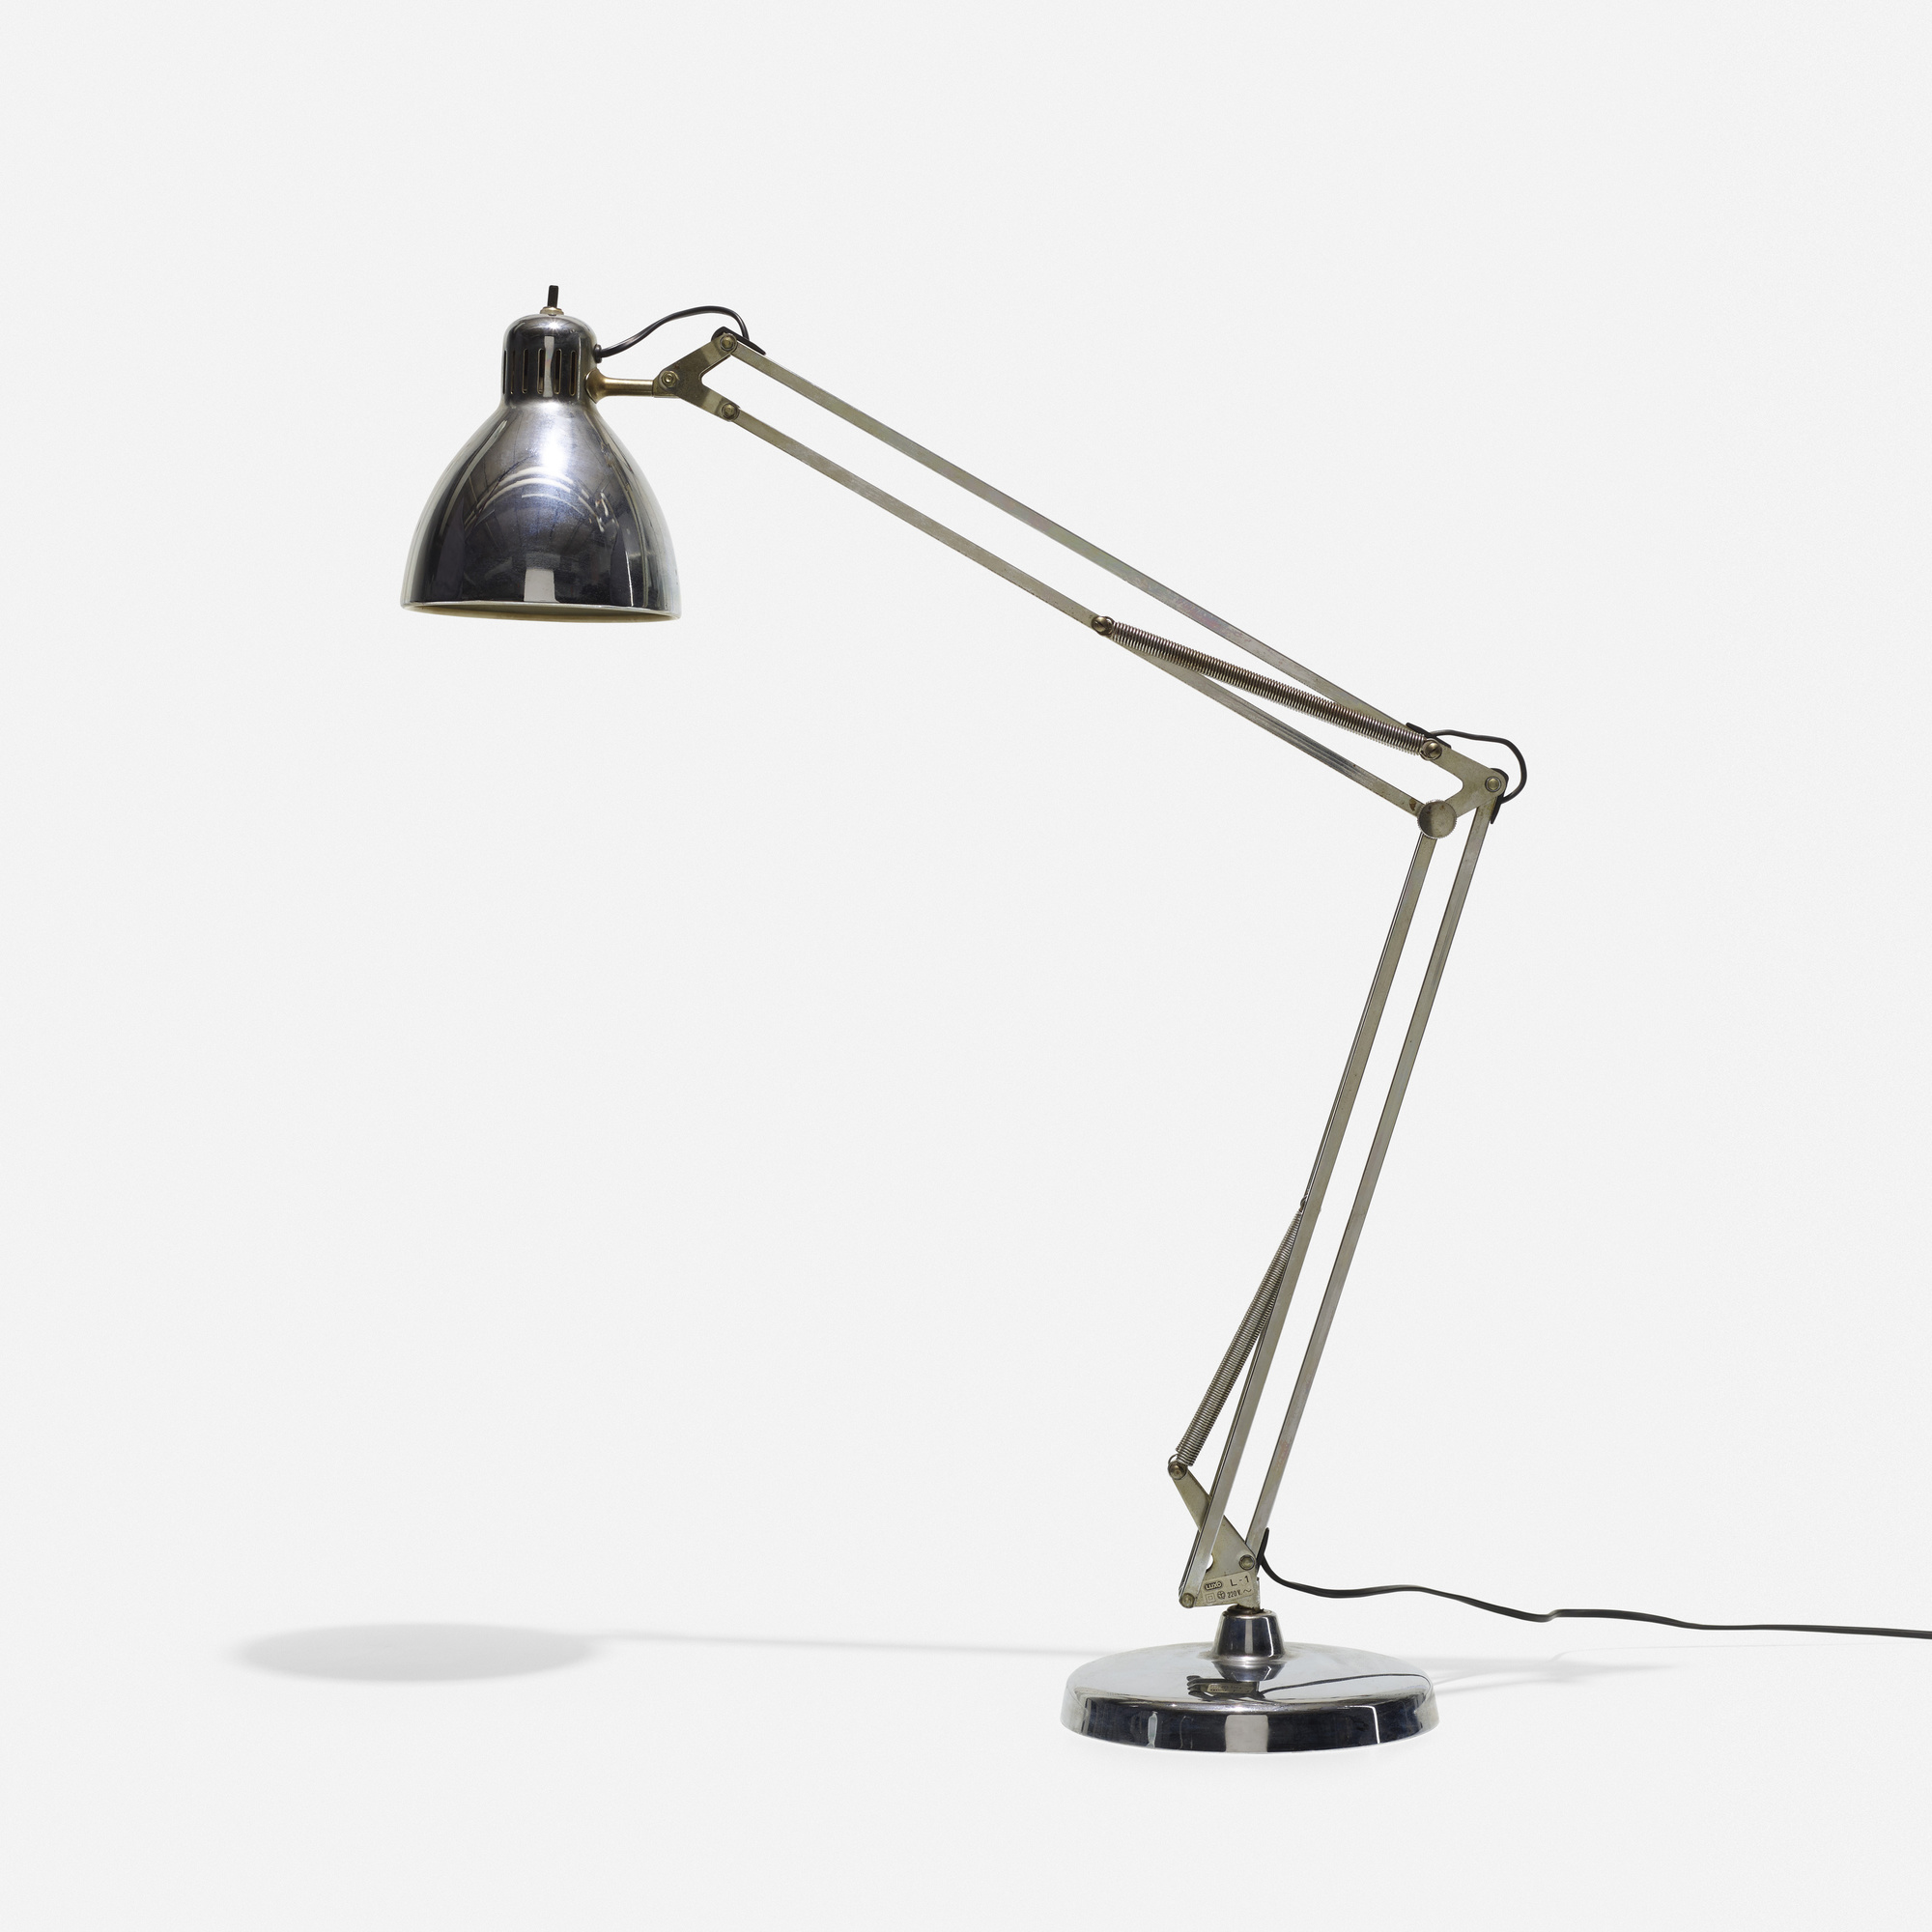 319: Jac Jacobsen / L-1 table lamp (1 of 1)